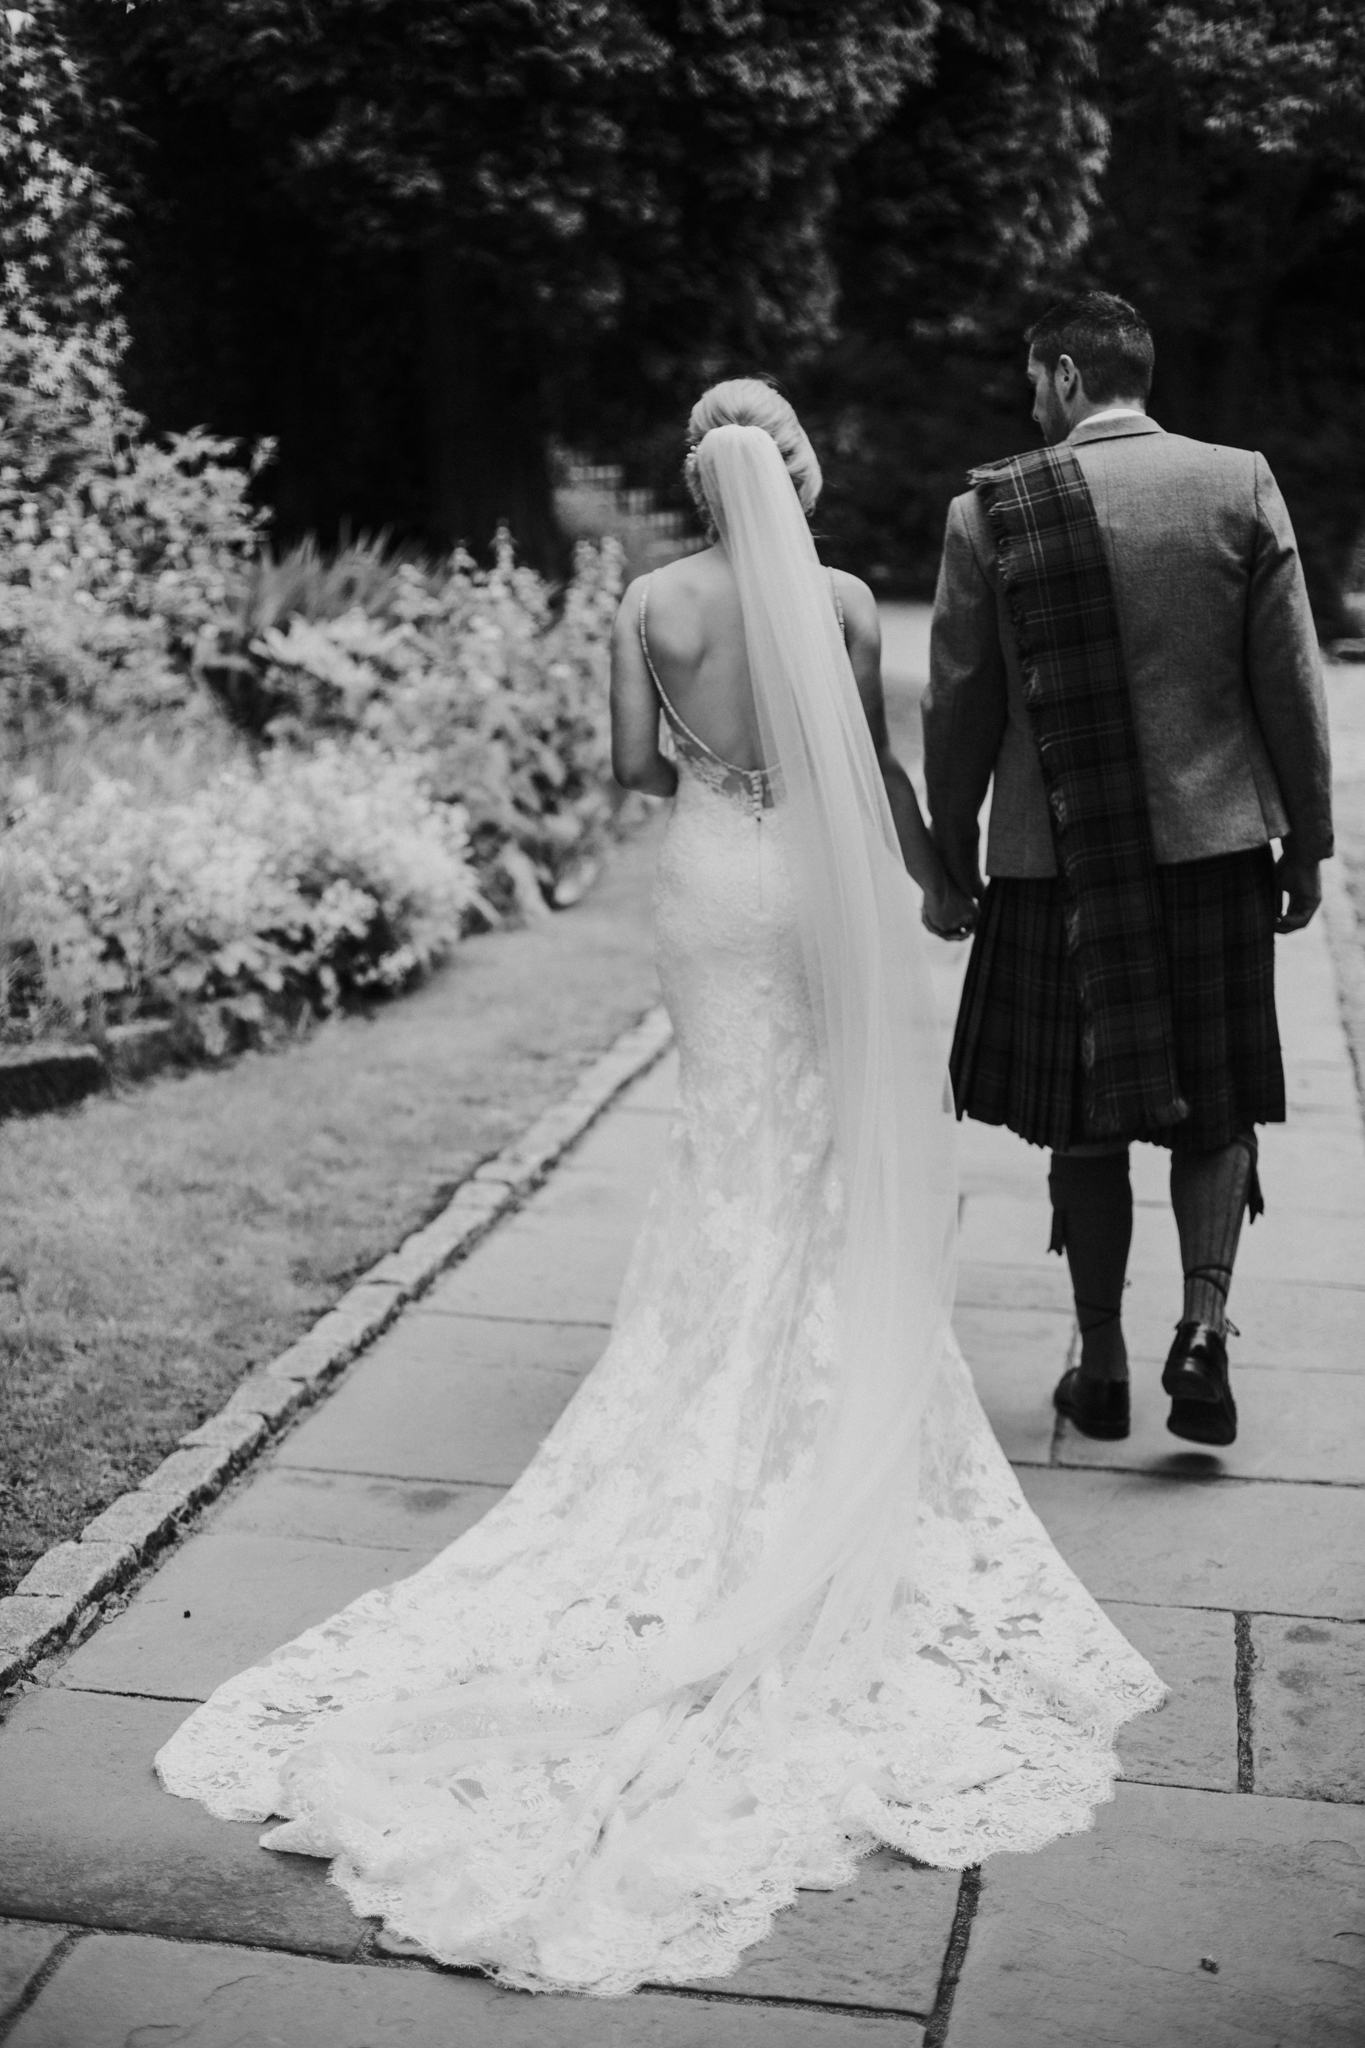 The bride and the groom are walking together on the ground of Crossbasket castle